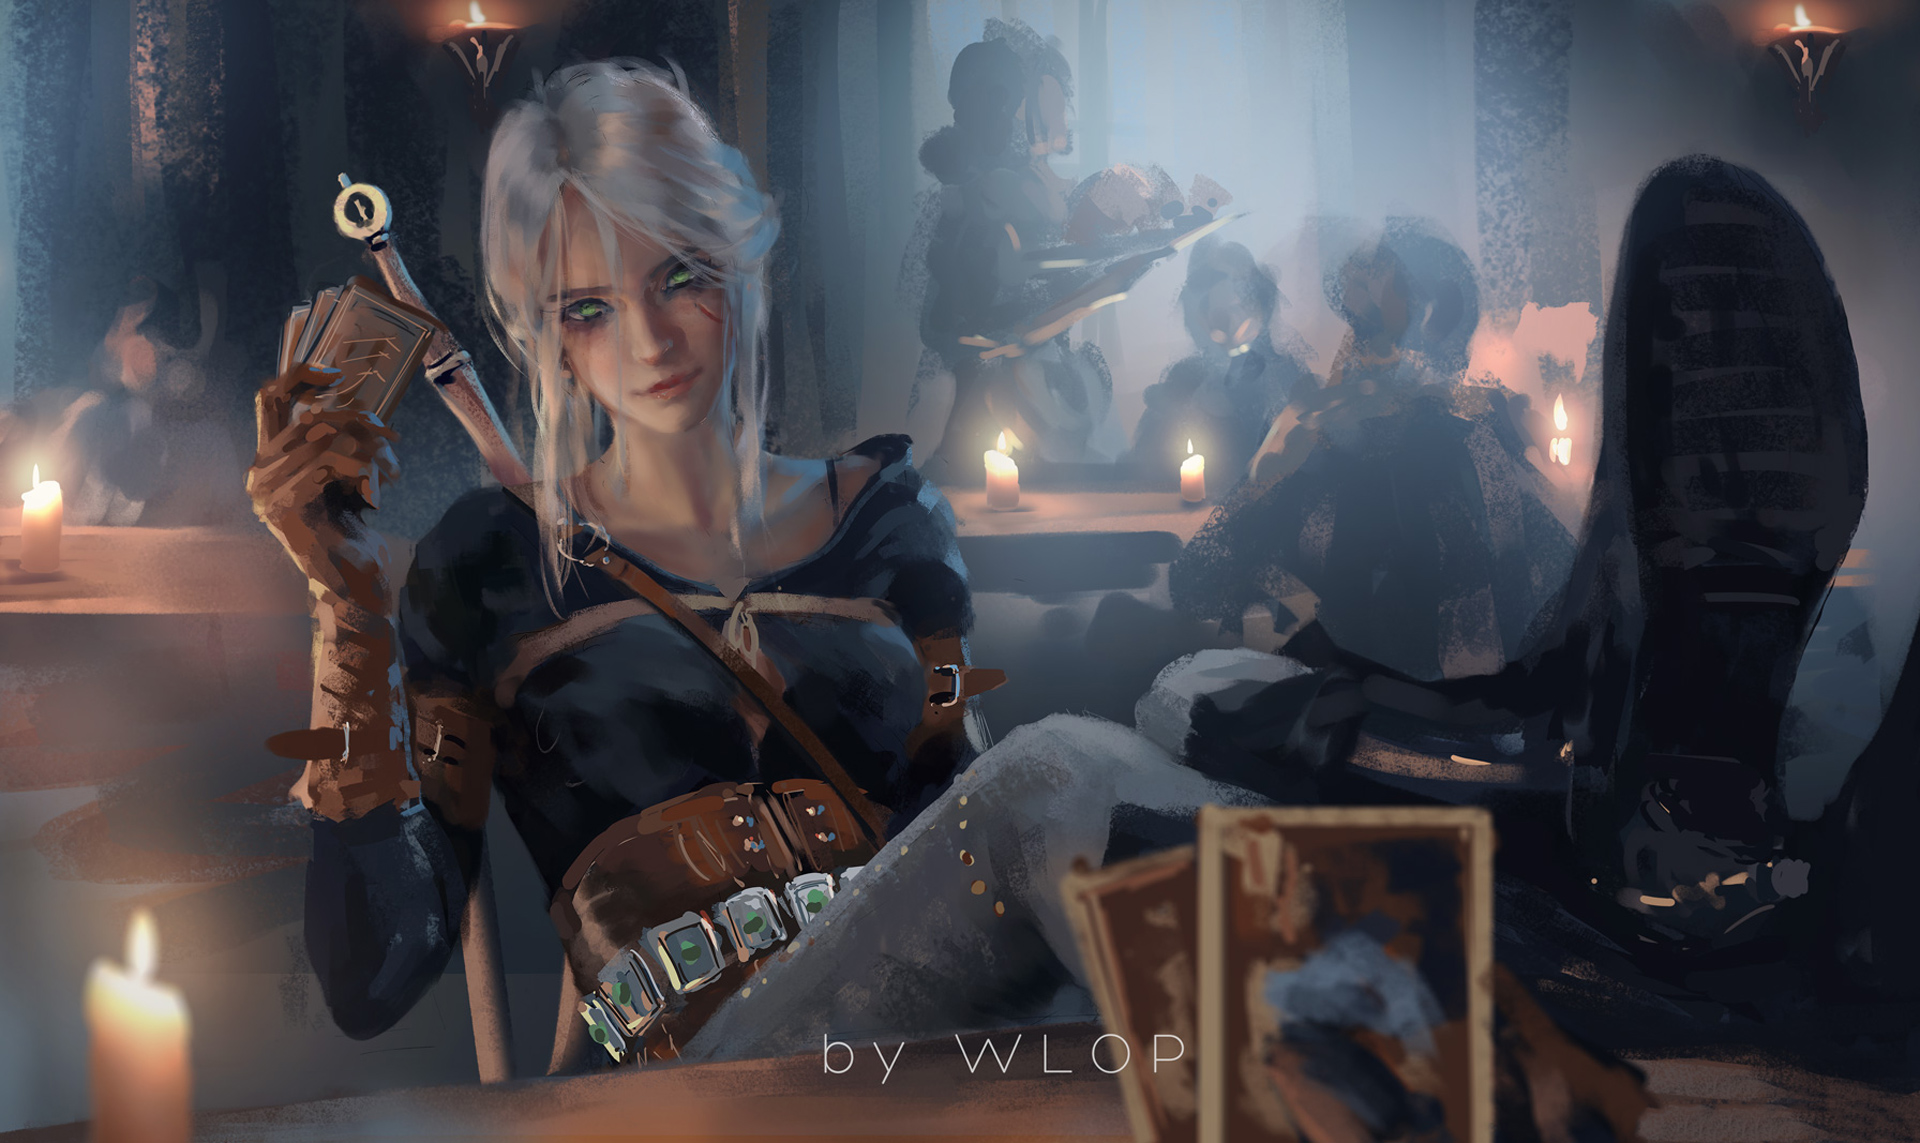 Ciri Witcher 3 Fanart Hd Games 4k Wallpapers Images